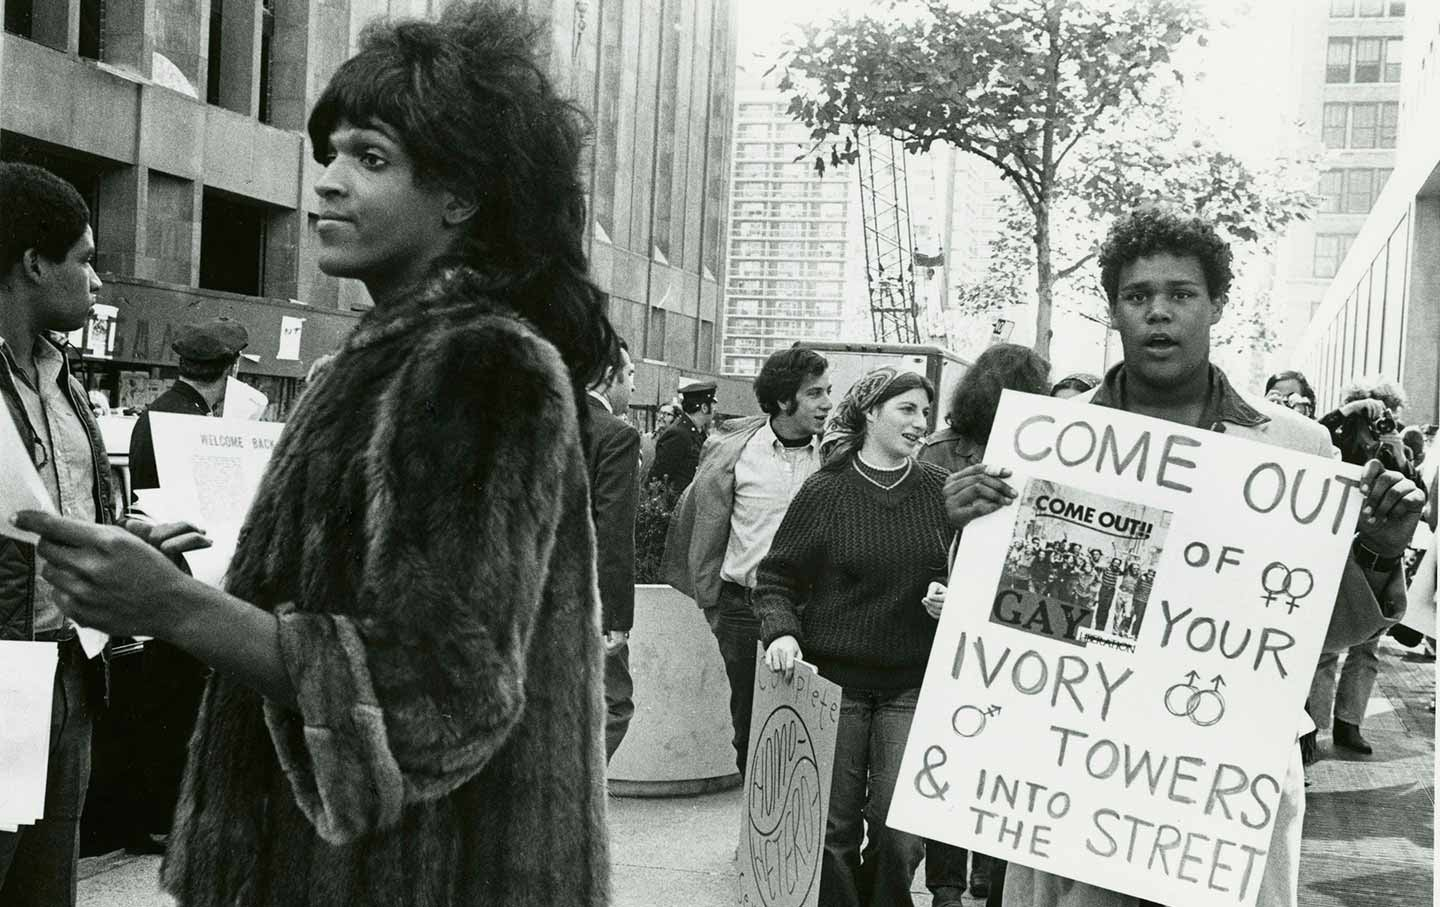 Activist Marsha P. Johnson handing out flyers in New York City in 1970.